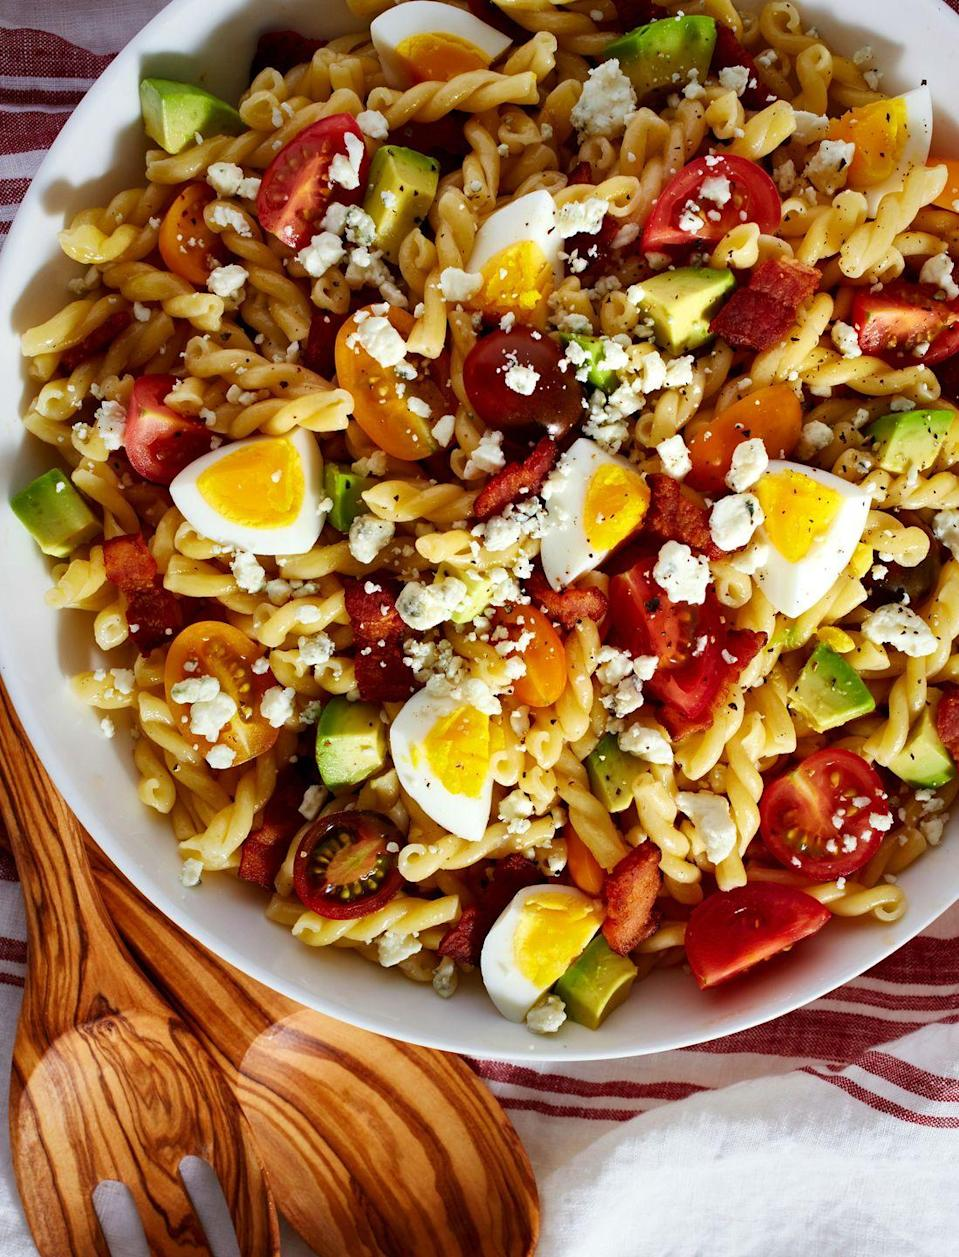 "<p>Your lunchtime favorite: pasta-ified.</p><p>Get the recipe from <a href=""https://www.delish.com/cooking/recipe-ideas/recipes/a47989/cobb-pasta-salad-recipe/"" rel=""nofollow noopener"" target=""_blank"" data-ylk=""slk:Delish"" class=""link rapid-noclick-resp"">Delish</a>.</p>"